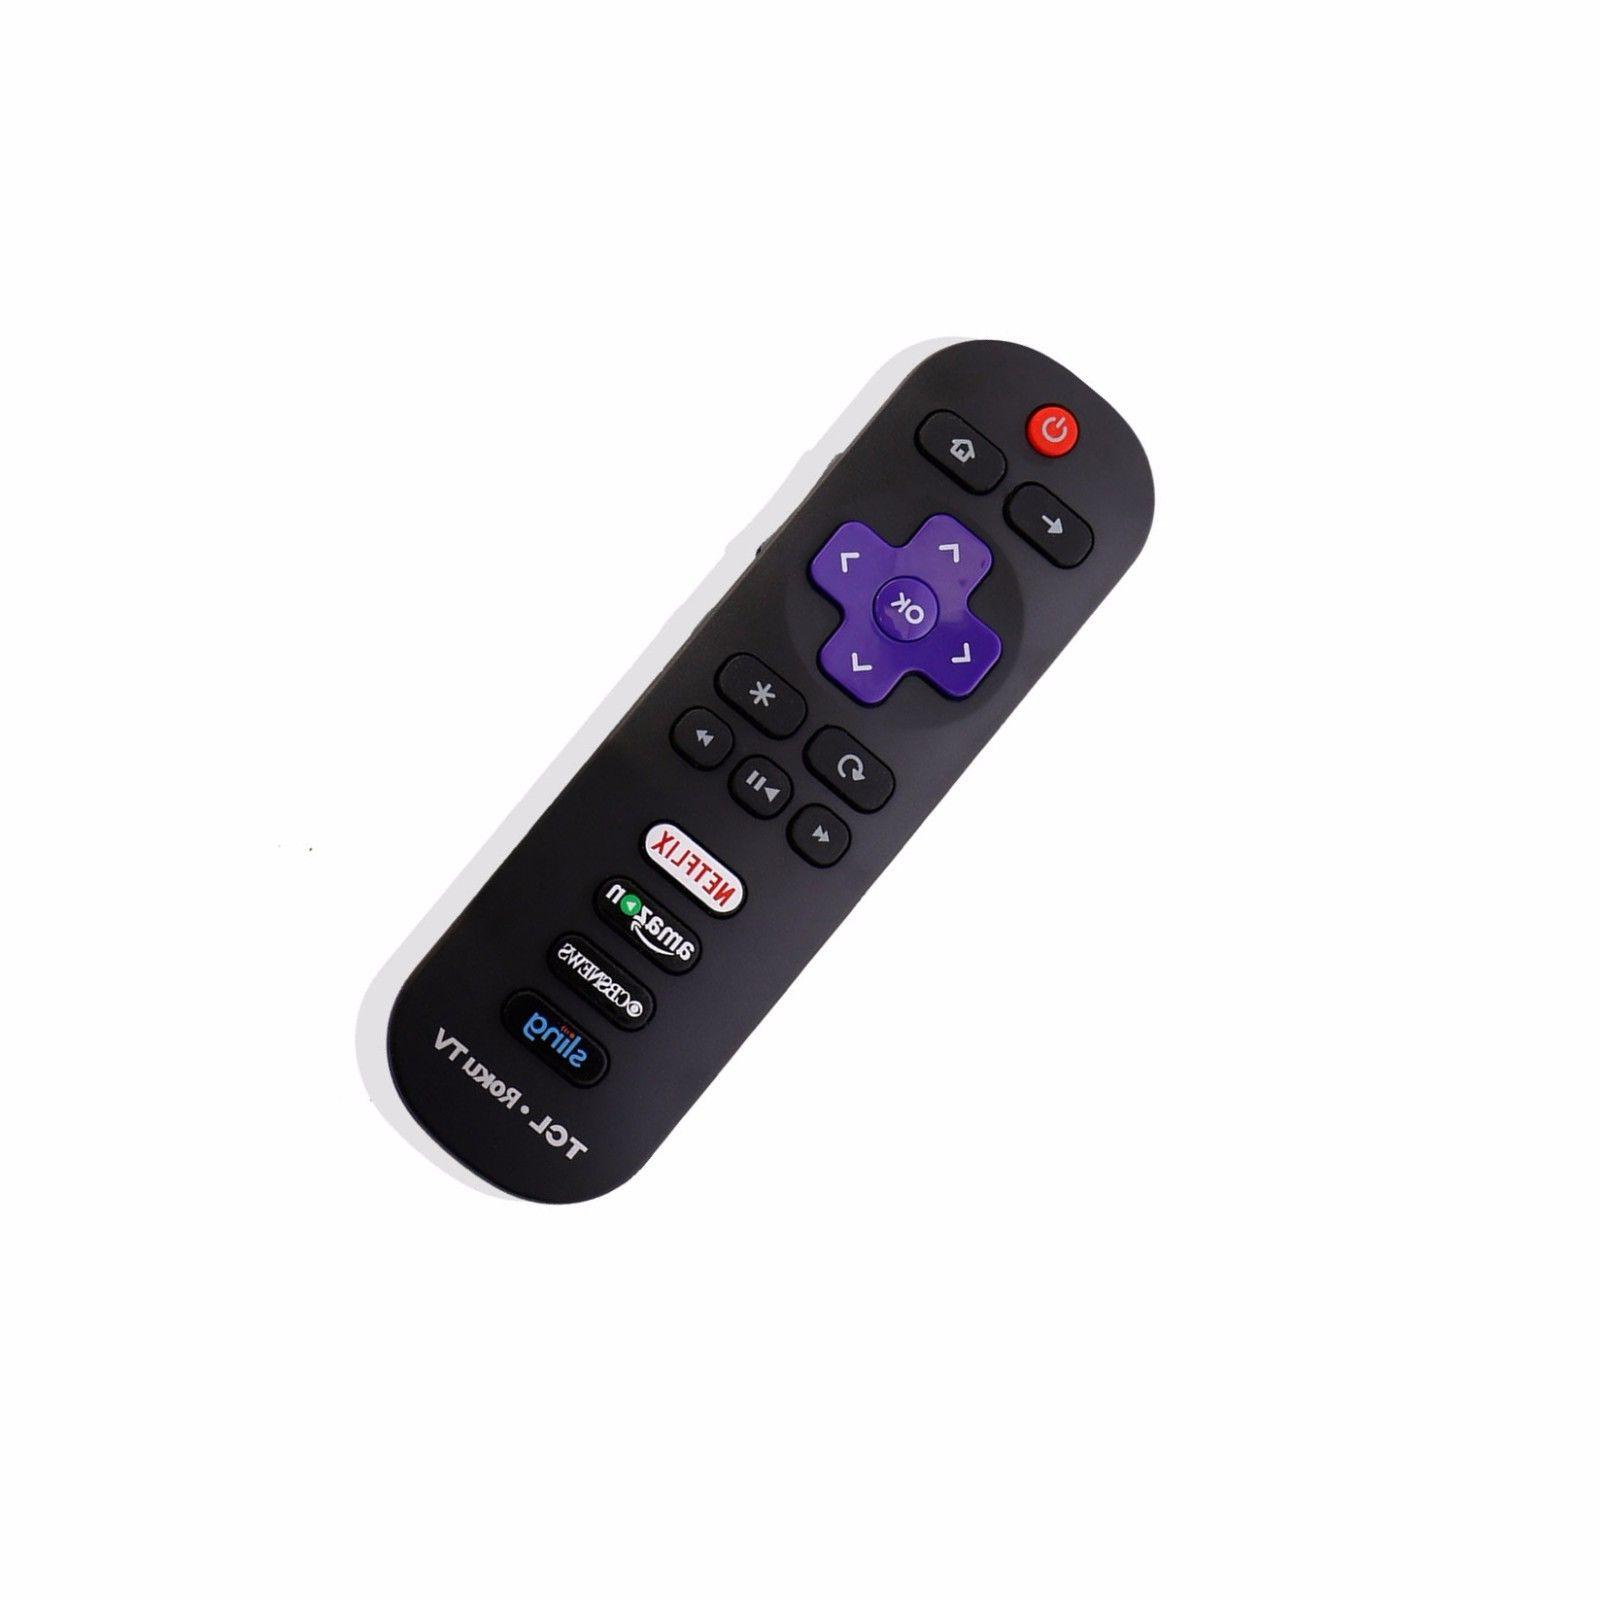 RC280 Remote for TCL ROKU TV 40FS3750 49FP110 43FP110 32FS3